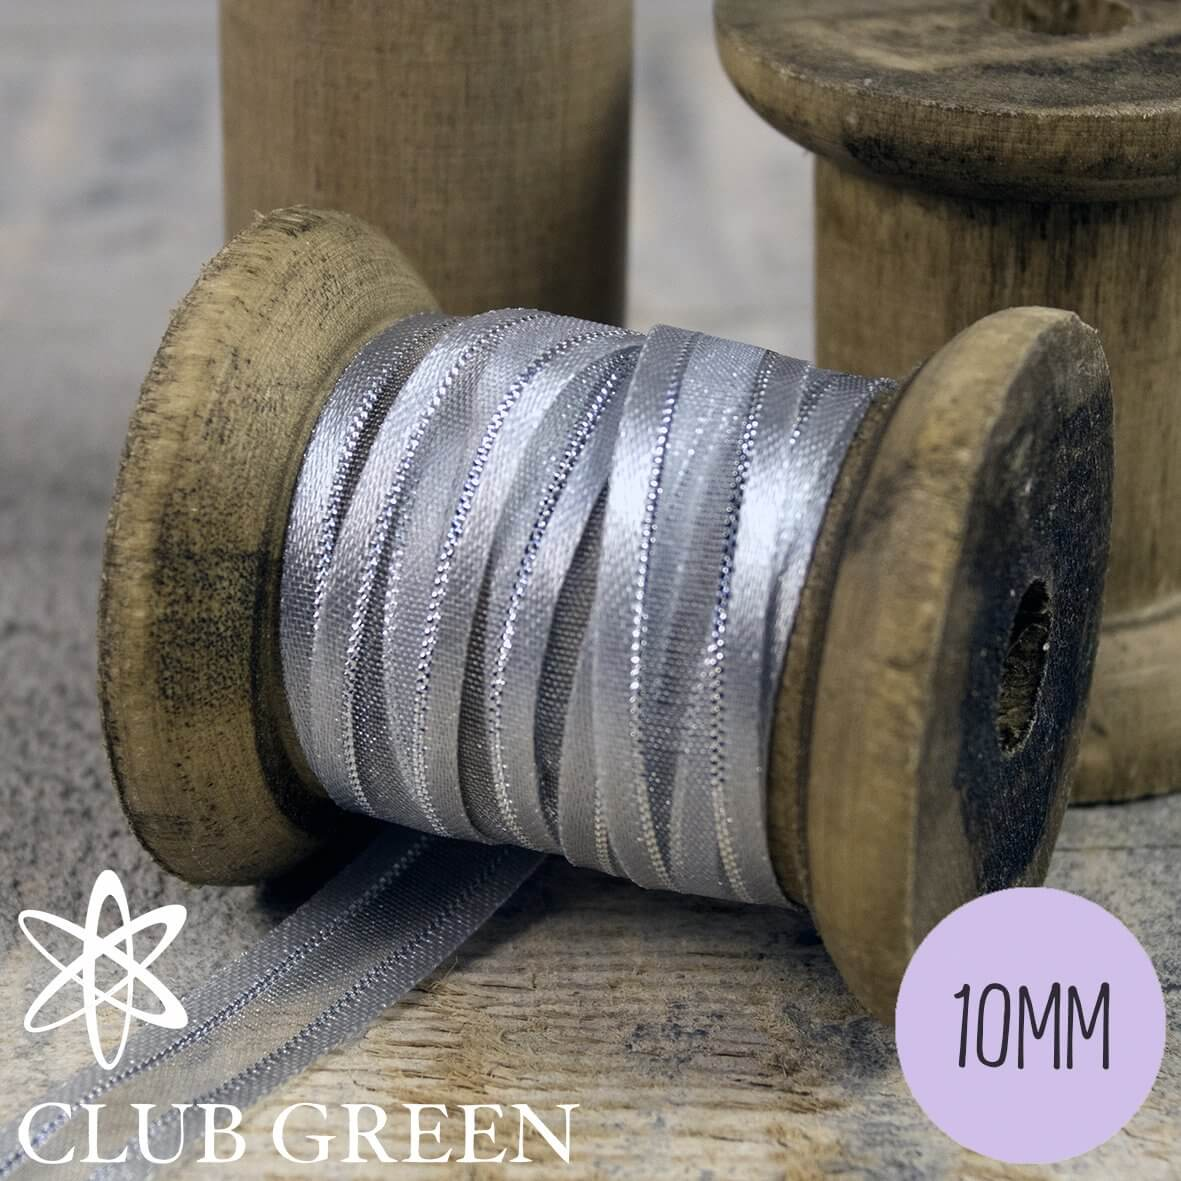 Club Green Organza Ribbon- Satin Edged with Metallic Thread - 10mm wide